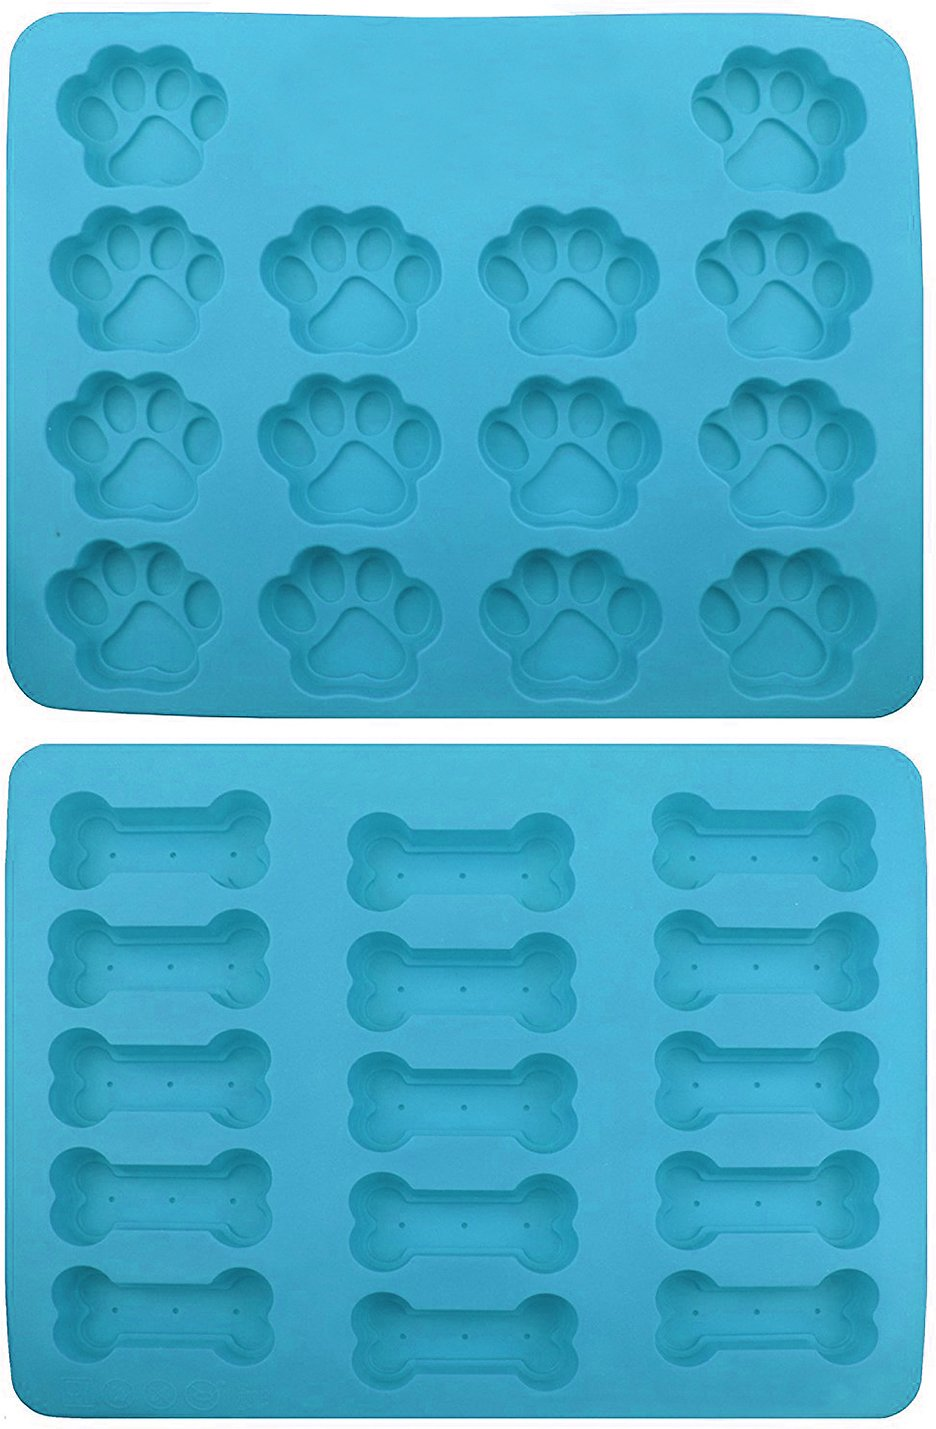 Win&Co Puppy Paws & Bones Silicone Baking Molds, 2-pack